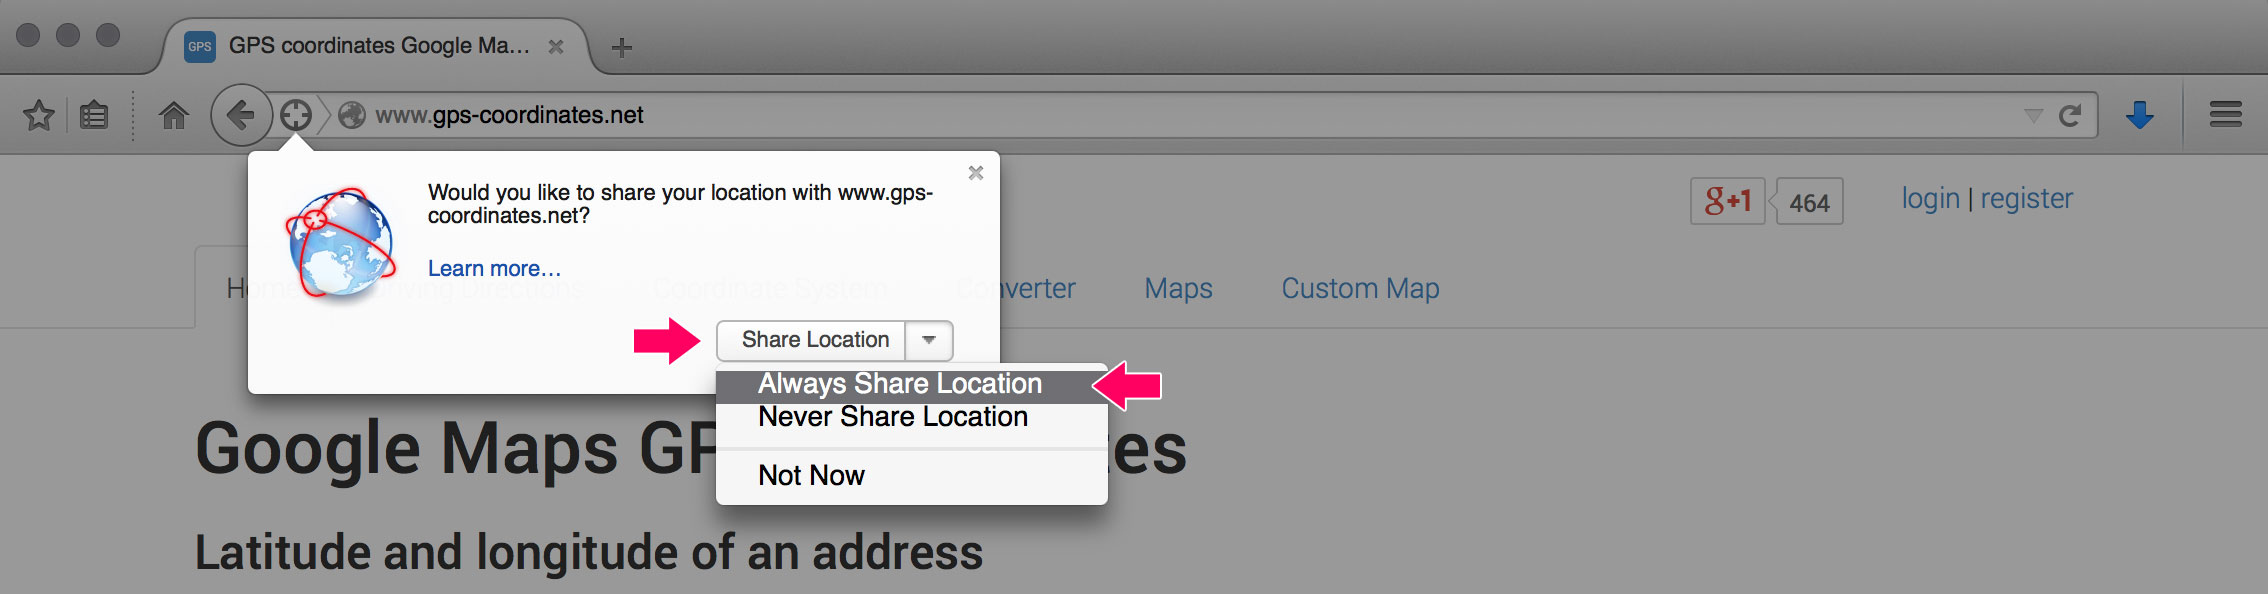 Firefox always share location